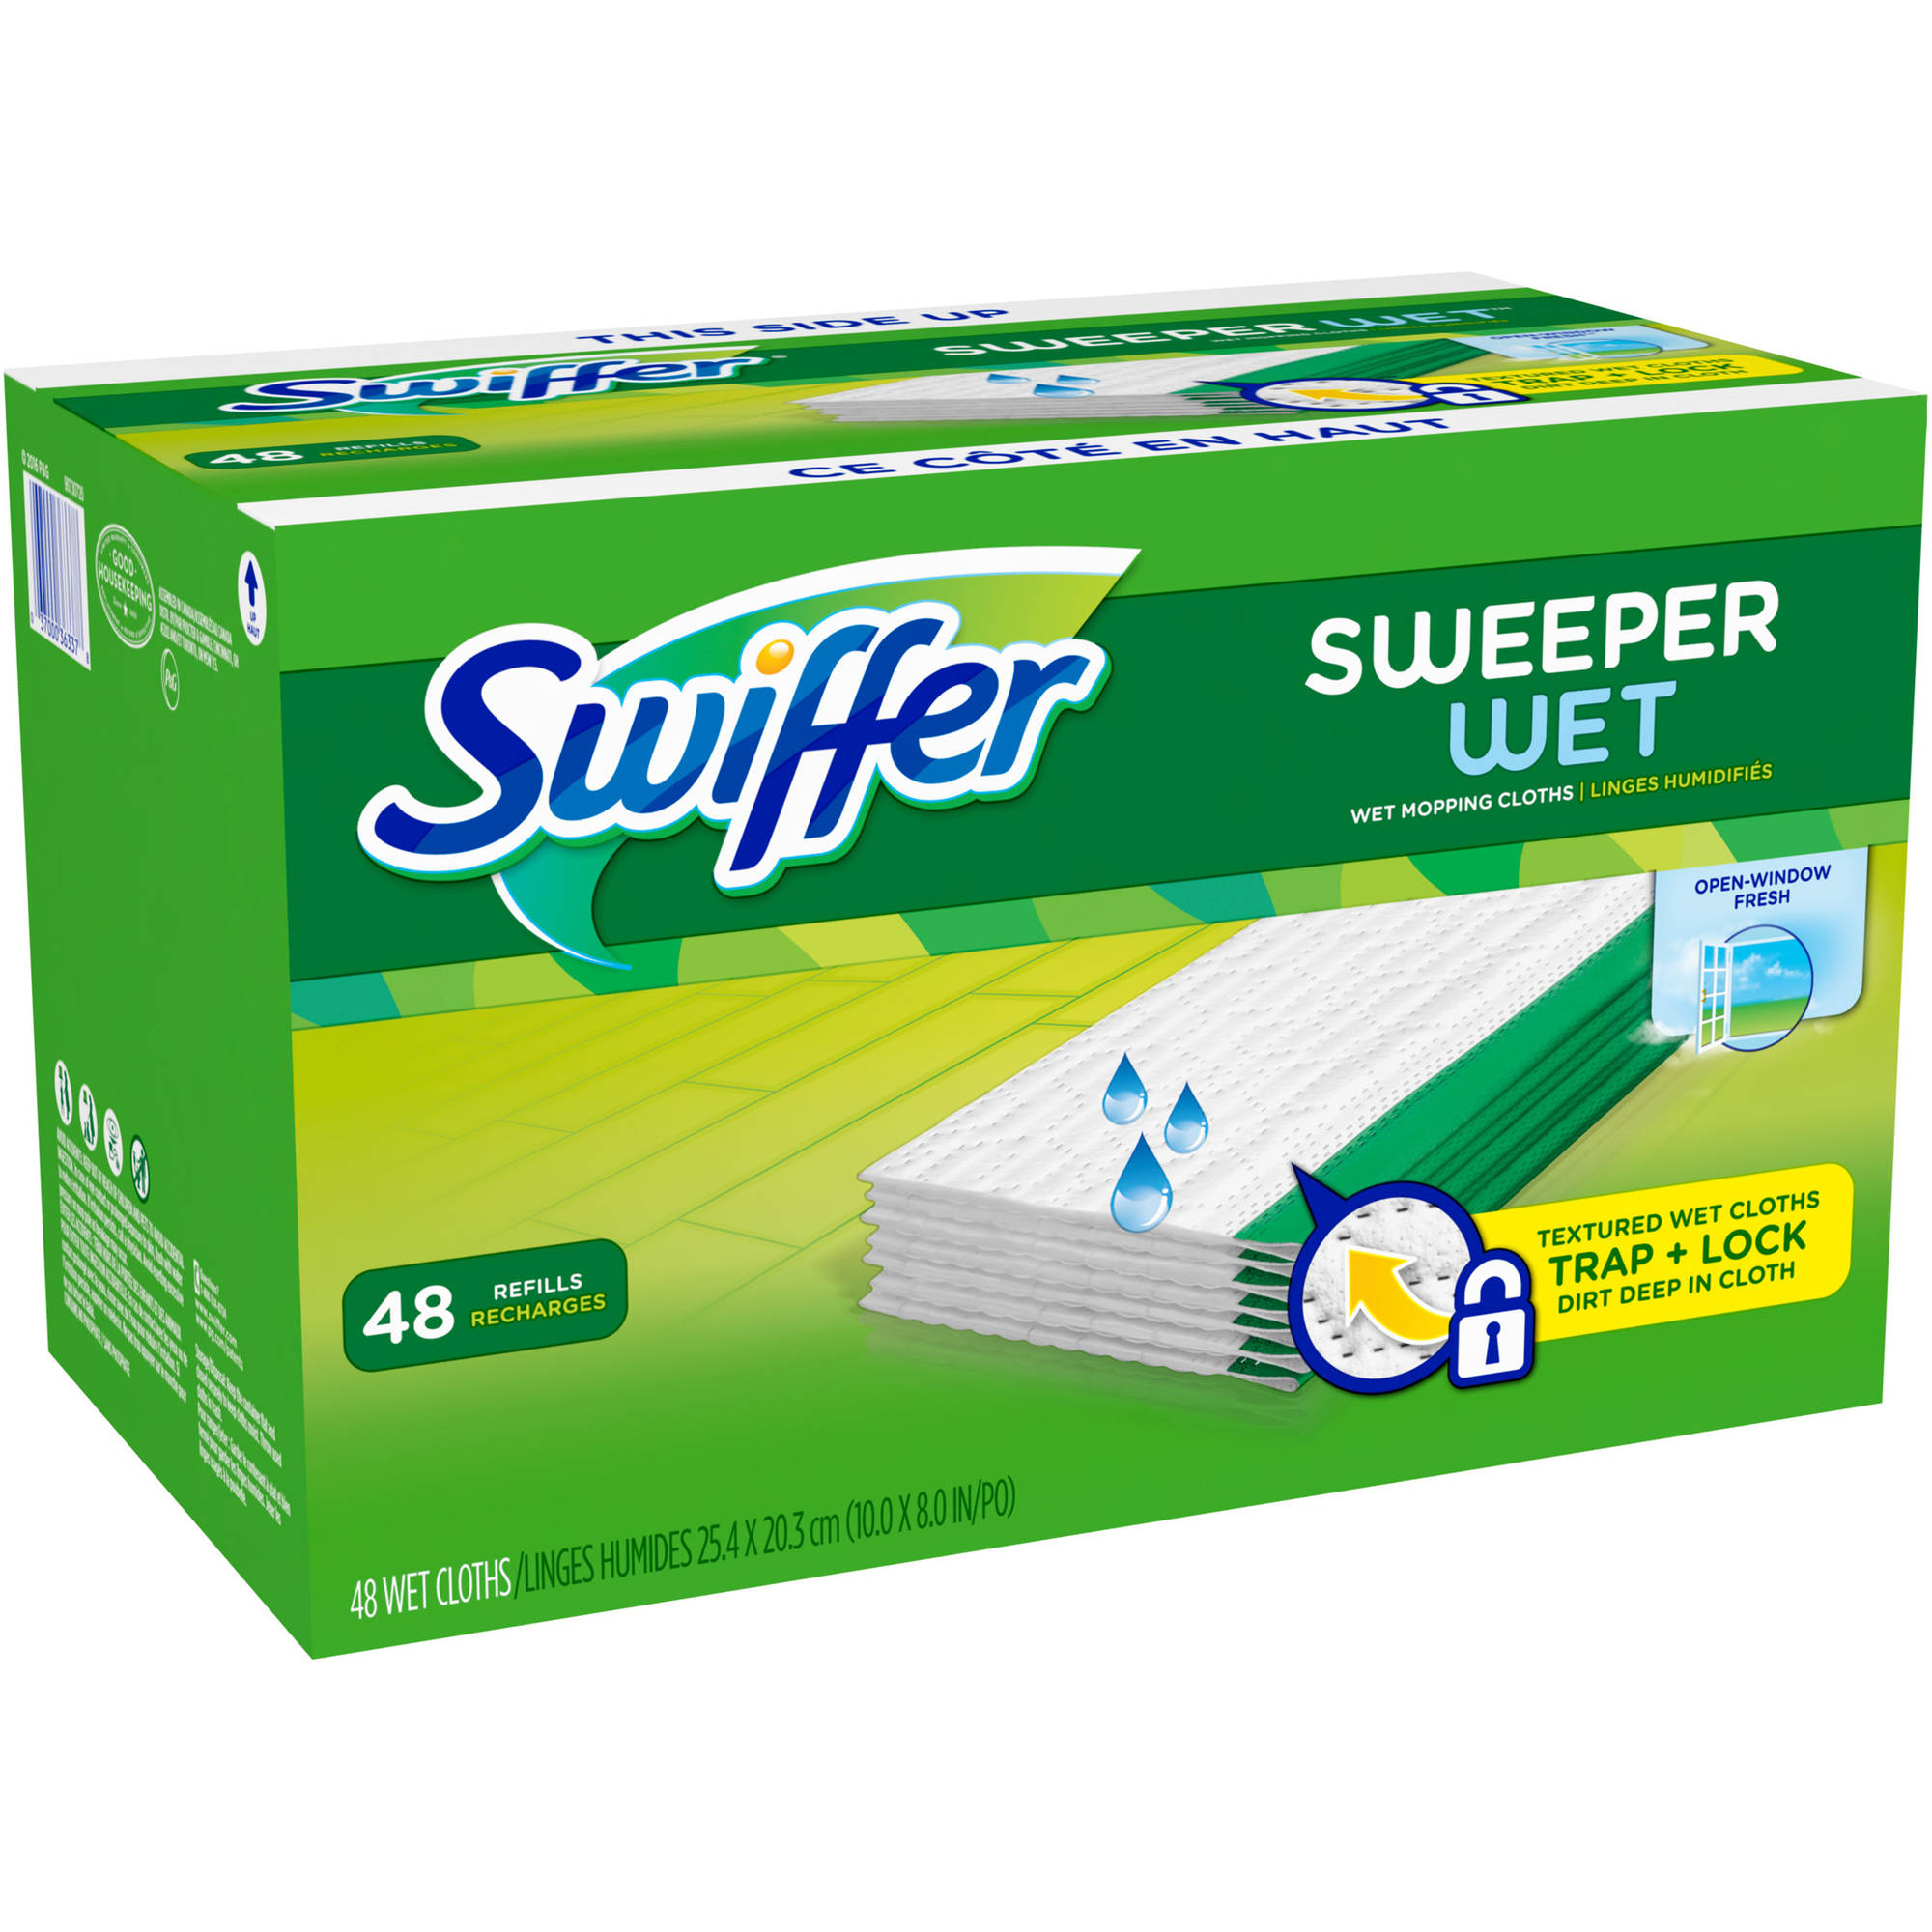 Swiffer 48 Pcs Sweeper Wet Mopping Cloths Refills Mop Cleaning Cloth X ...